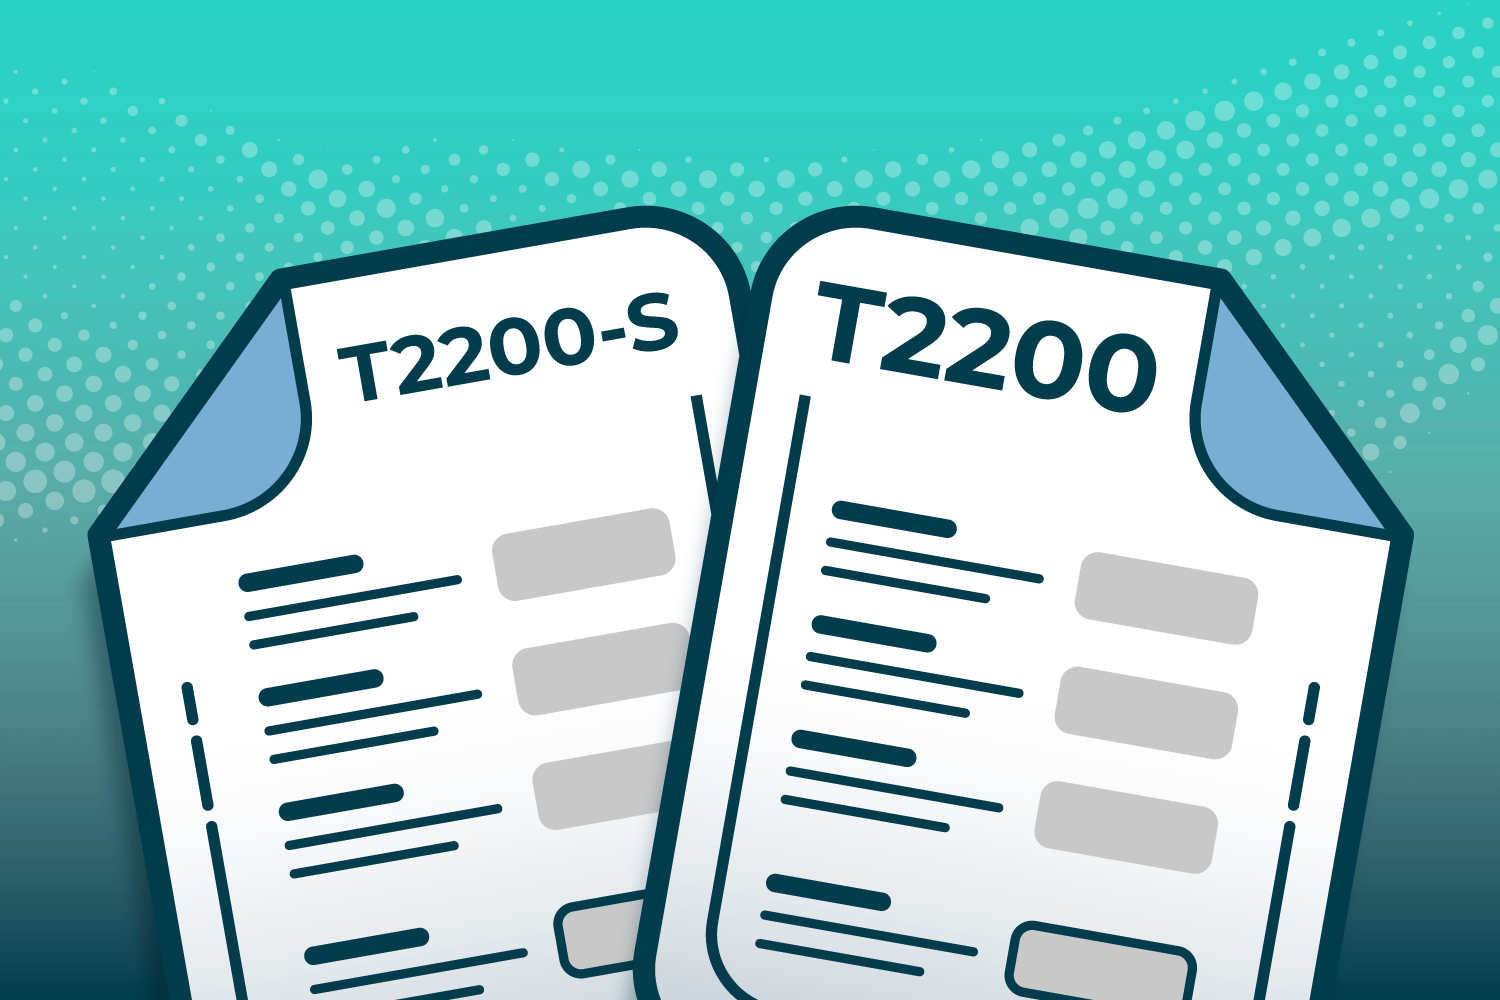 T2200 Forms: What You Need to Know